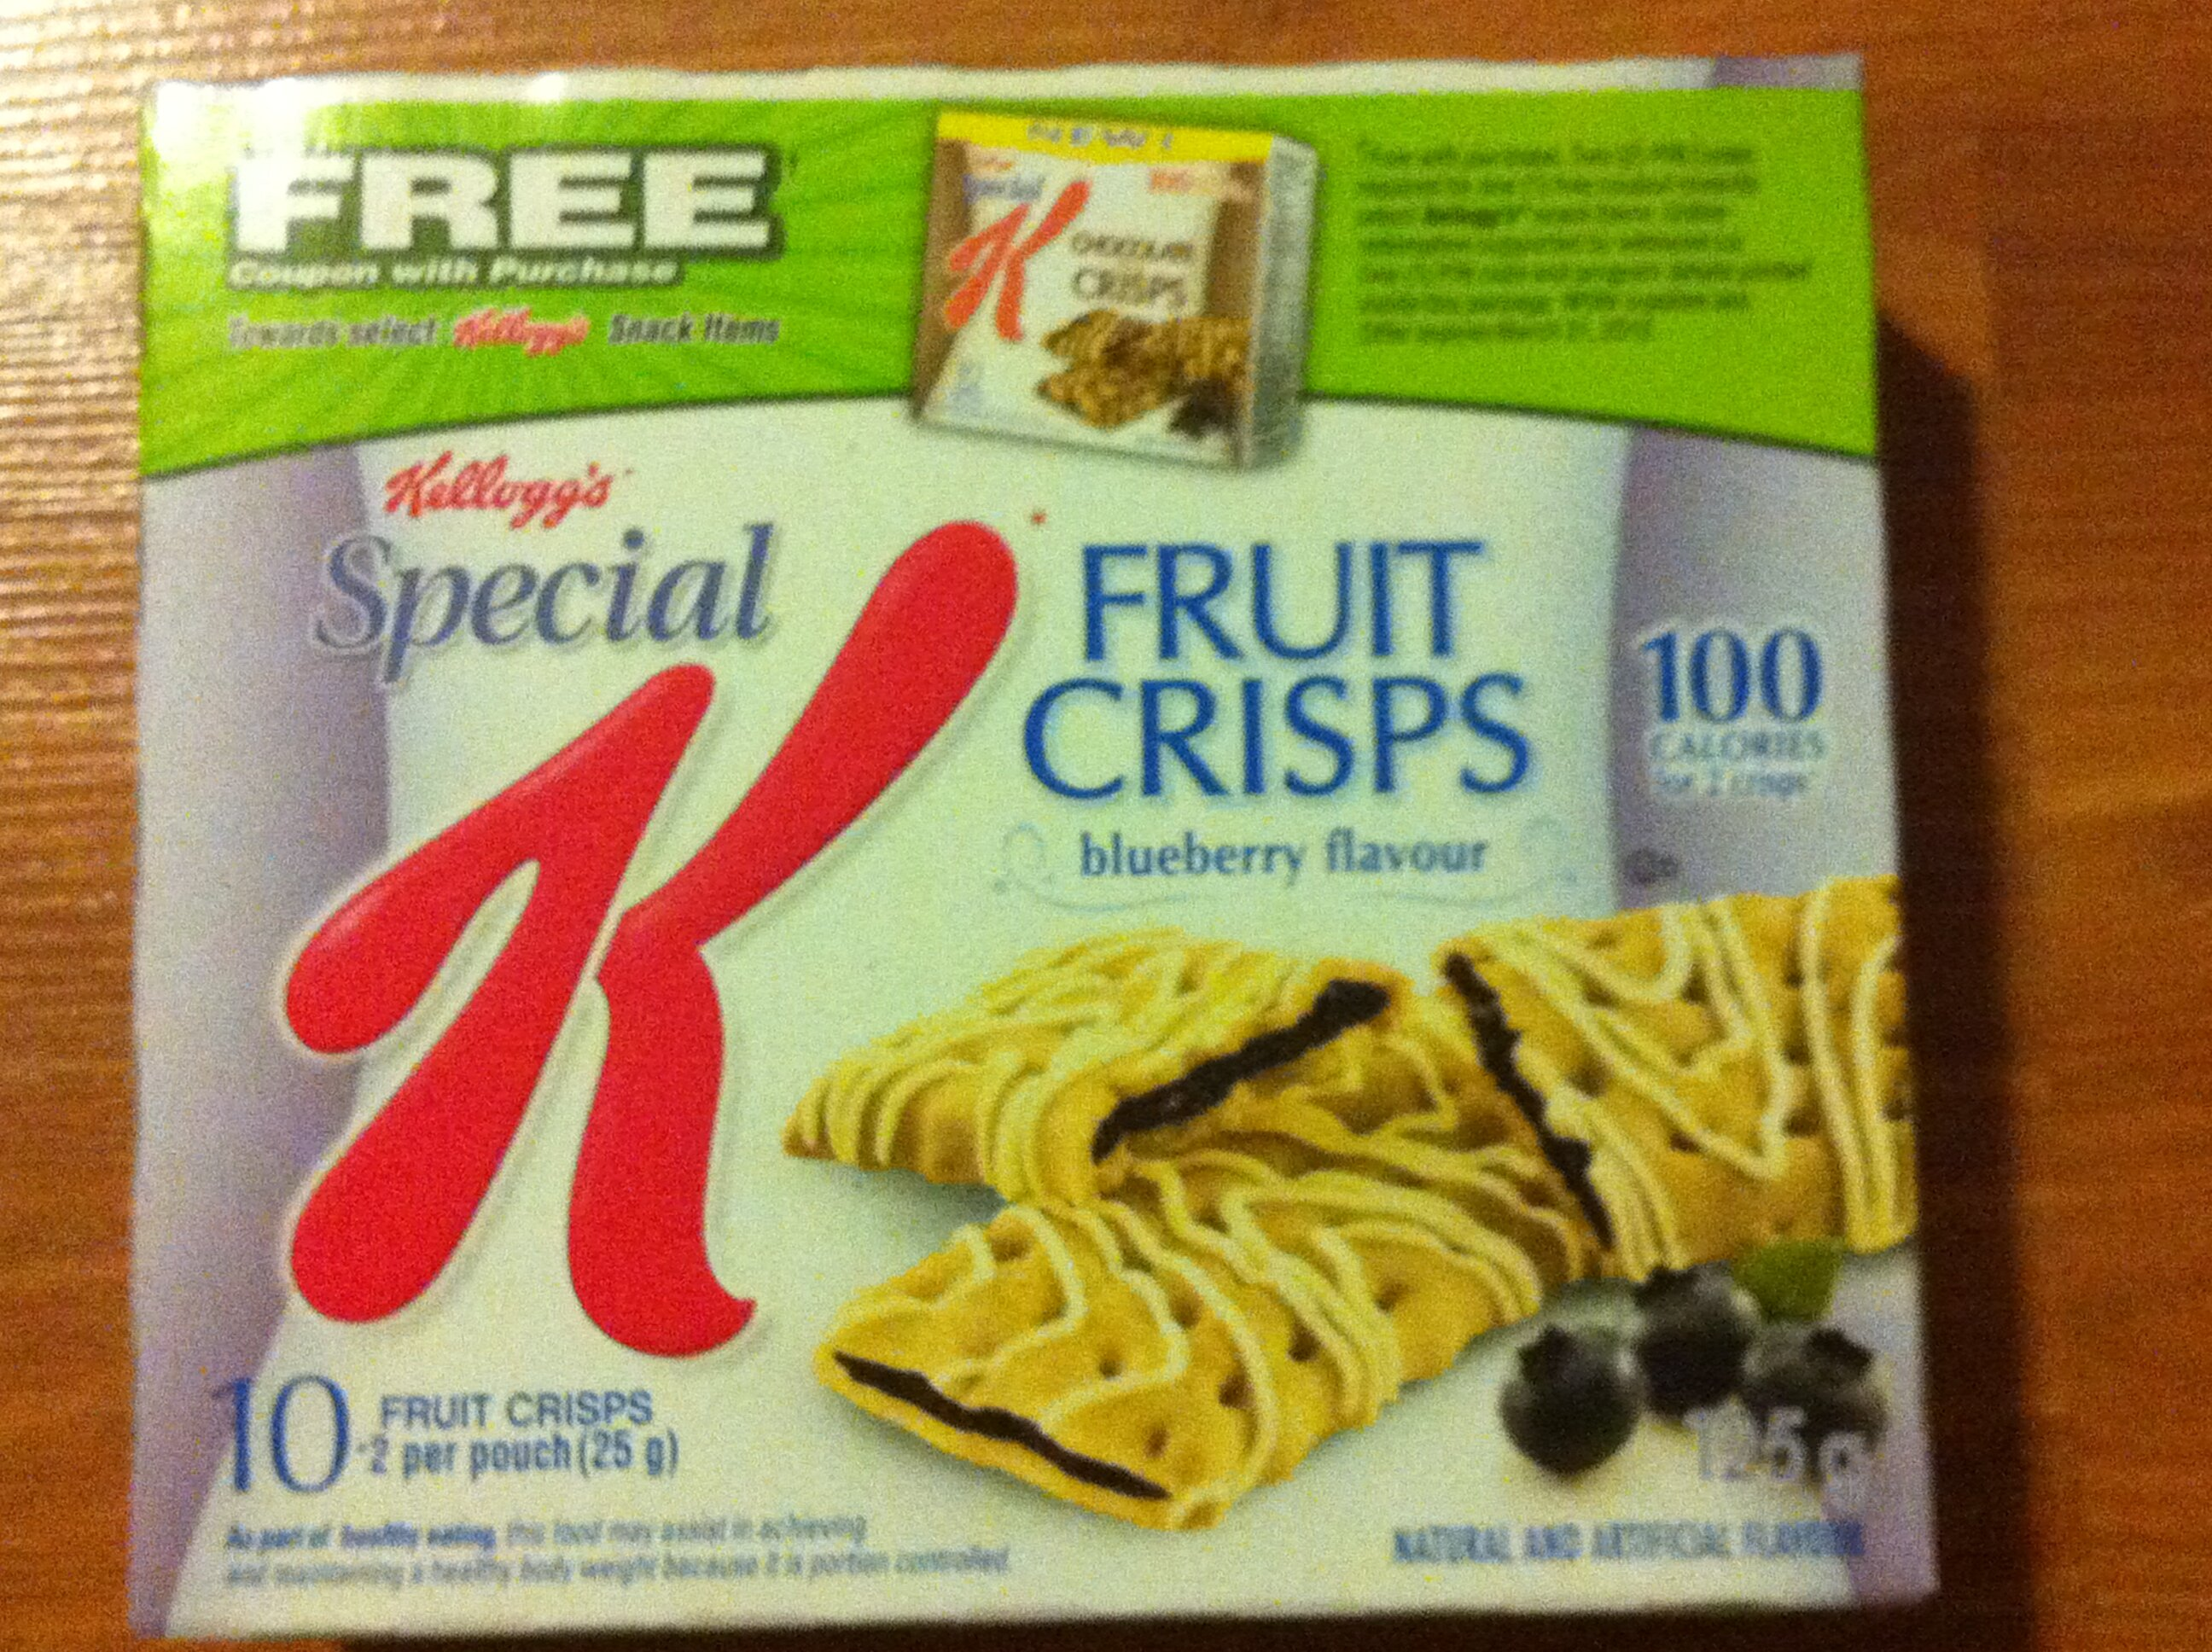 FREE Kelloggs Snack With Codes From 2 Participating Products